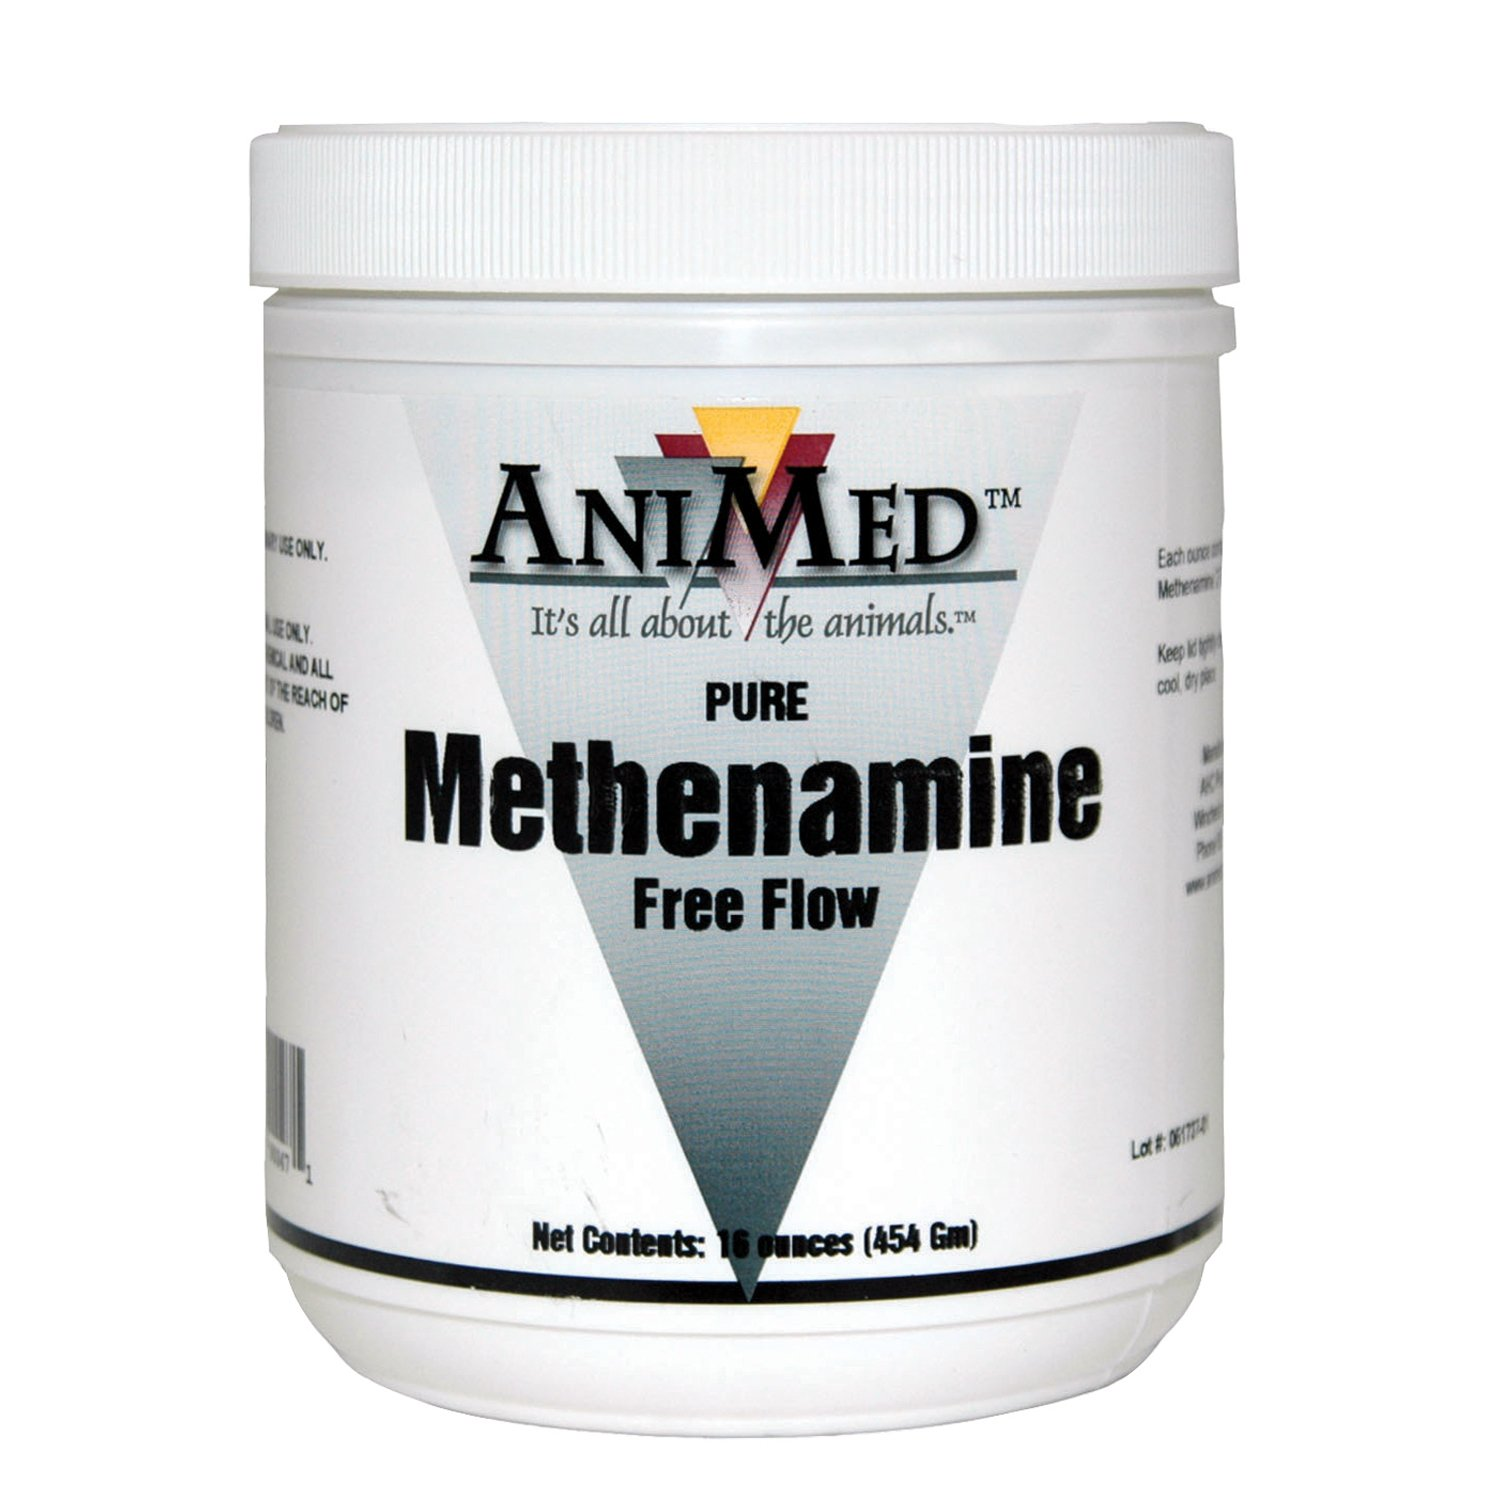 AniMed Methenamine Pure Multi-Species Pet Supplement, 16-Ounce by AniMed